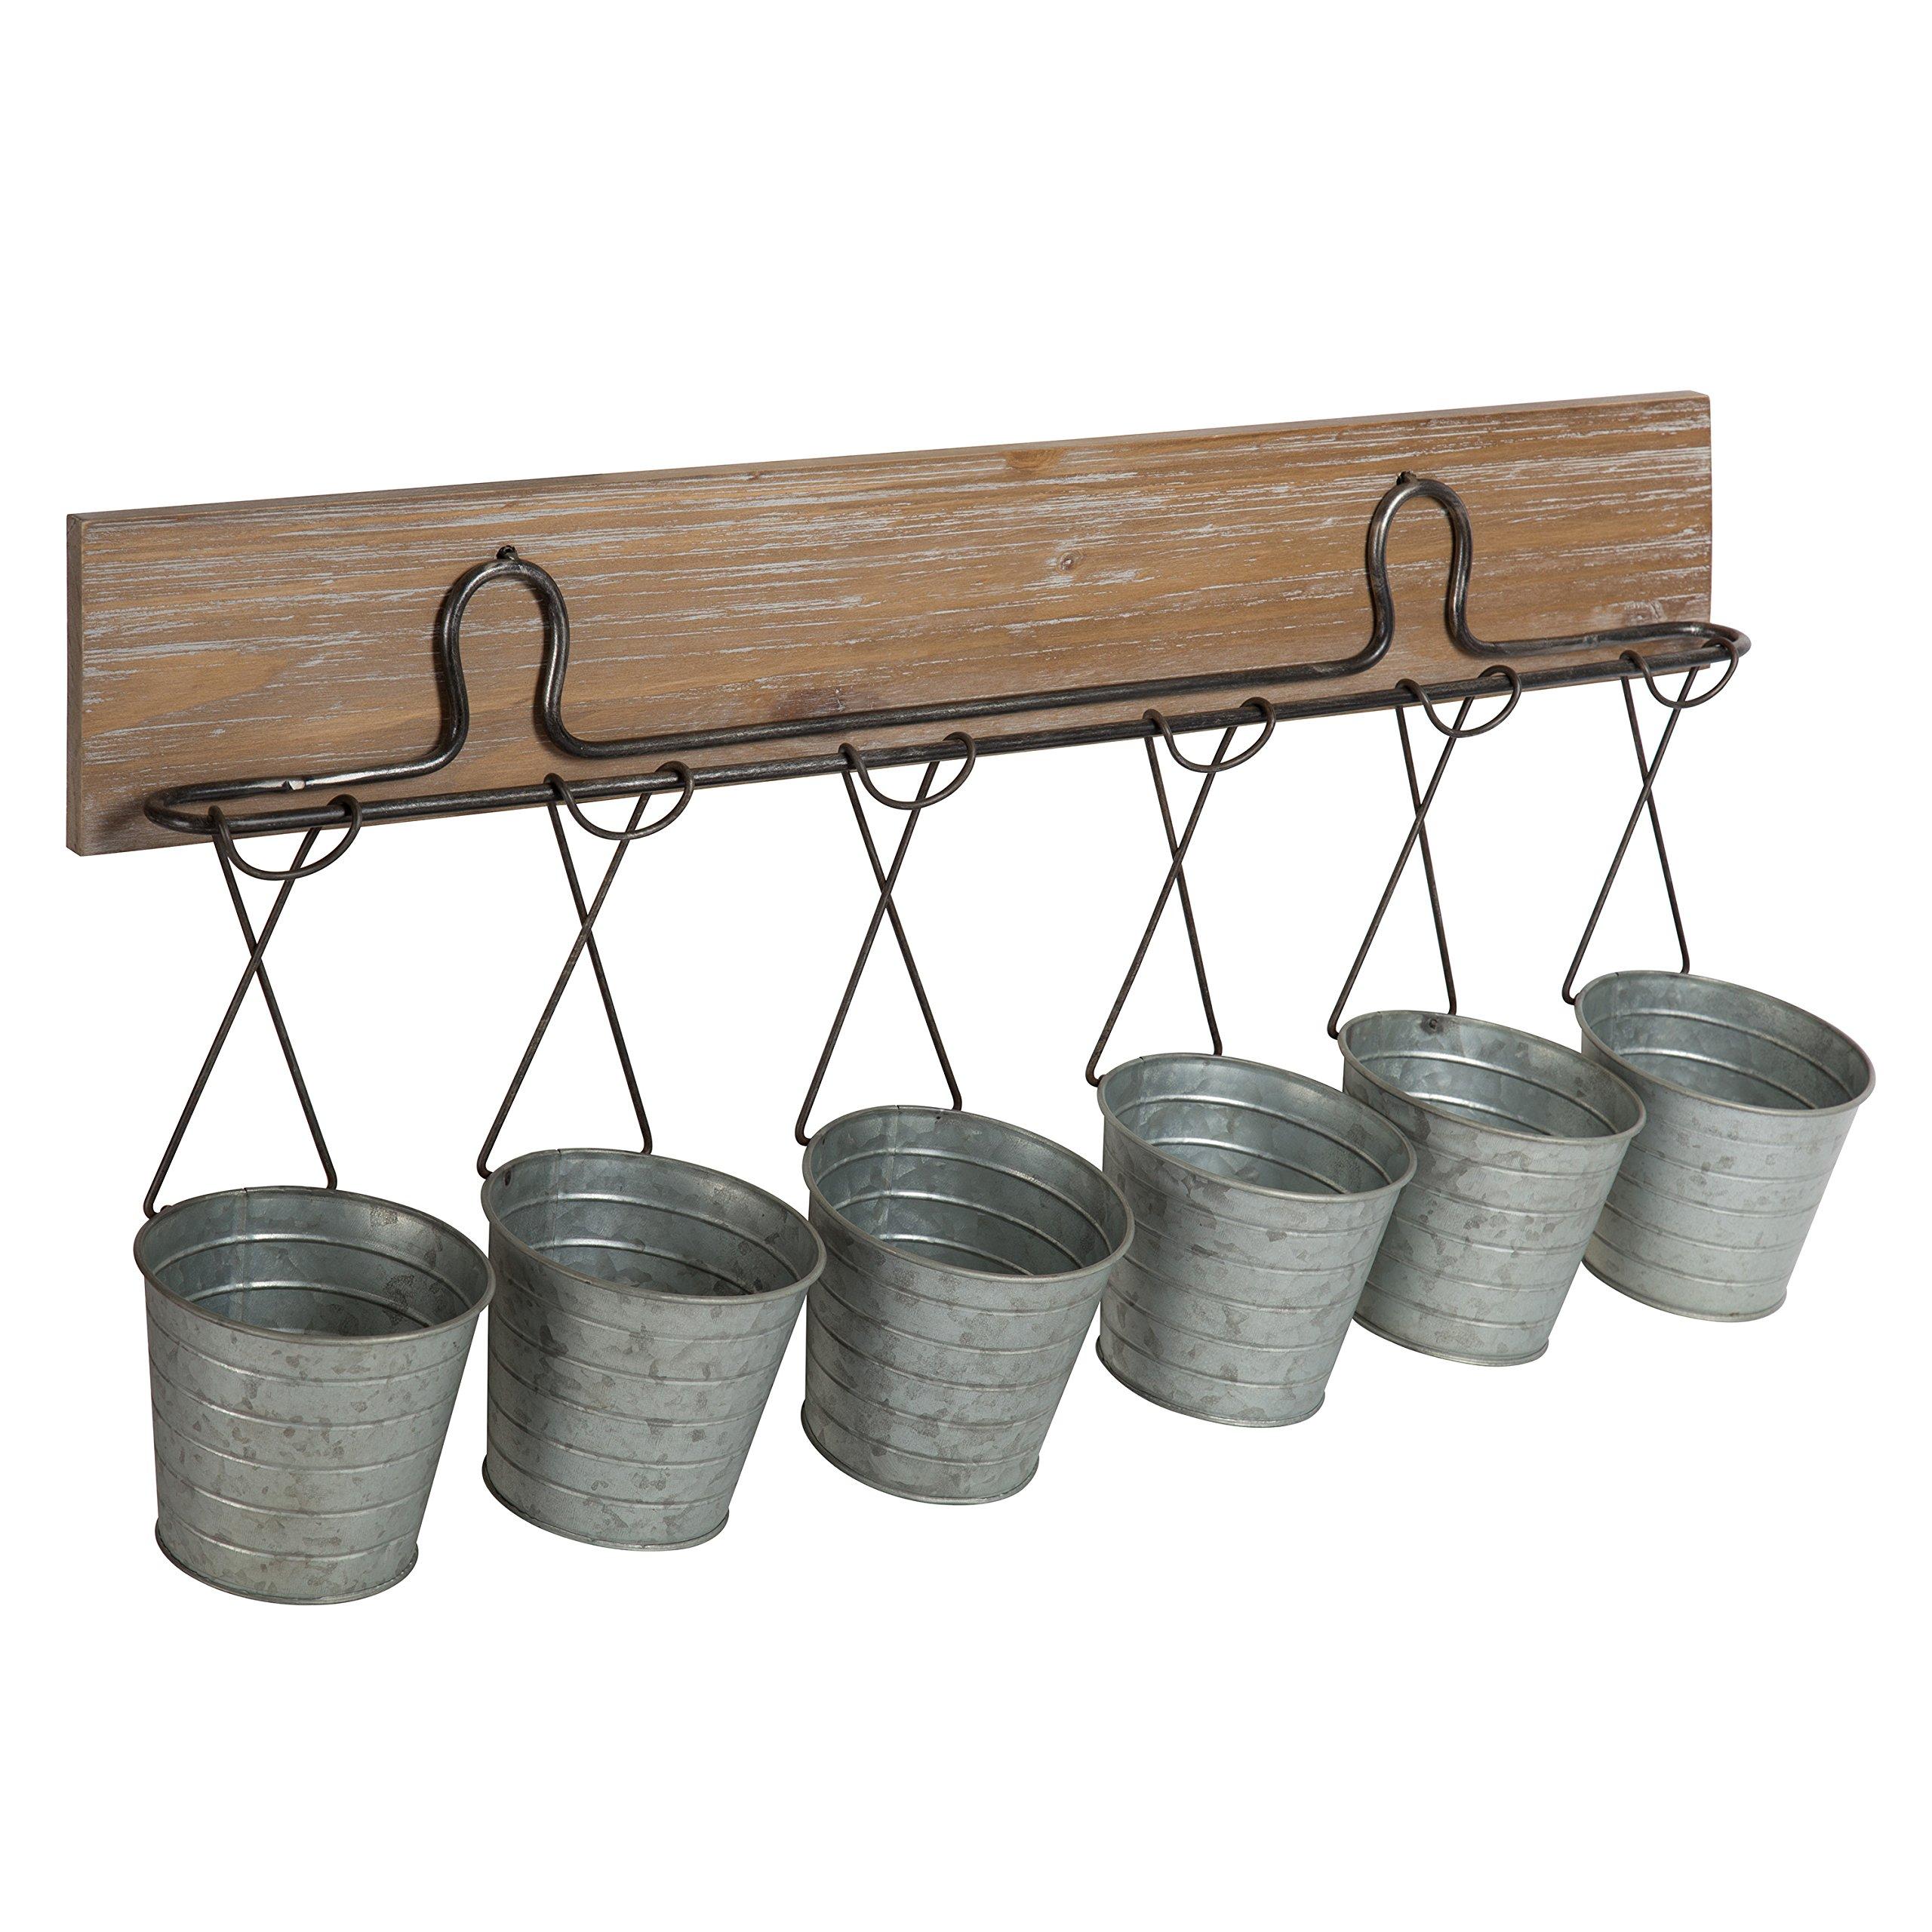 Kate and Laurel Pailey Wall Mounted Multi-Functional Wall Storage Organizer or Planters with Rustic Wood Plaque and 6 Galvanized Mini Metal Buckets by Kate and Laurel